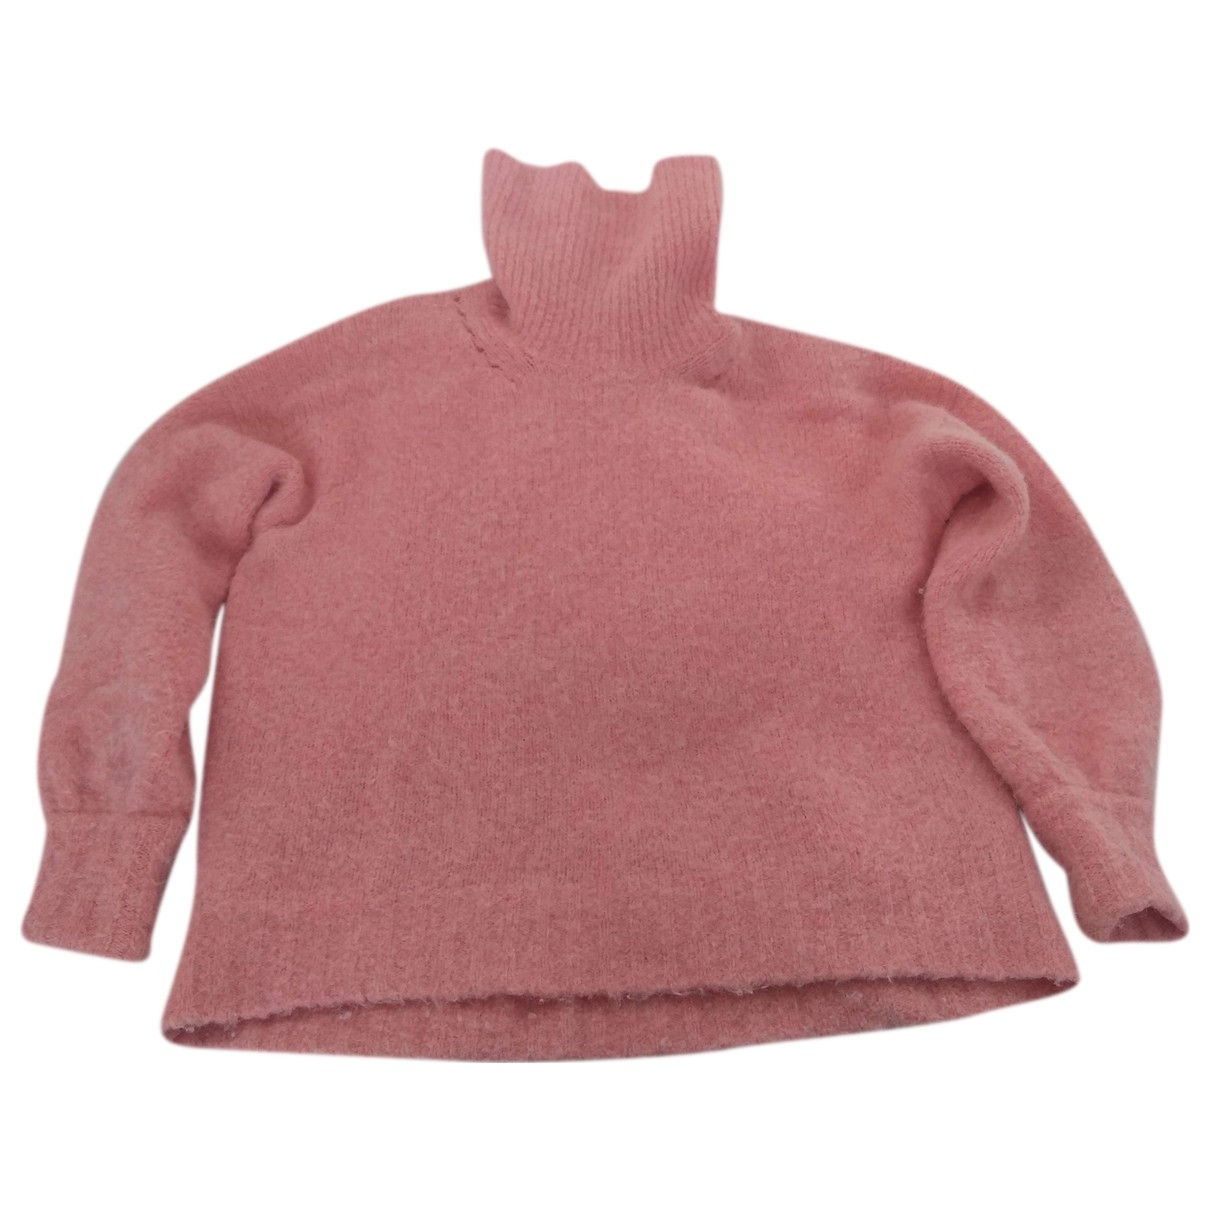 J.crew \N Pullover in  Rosa Wolle